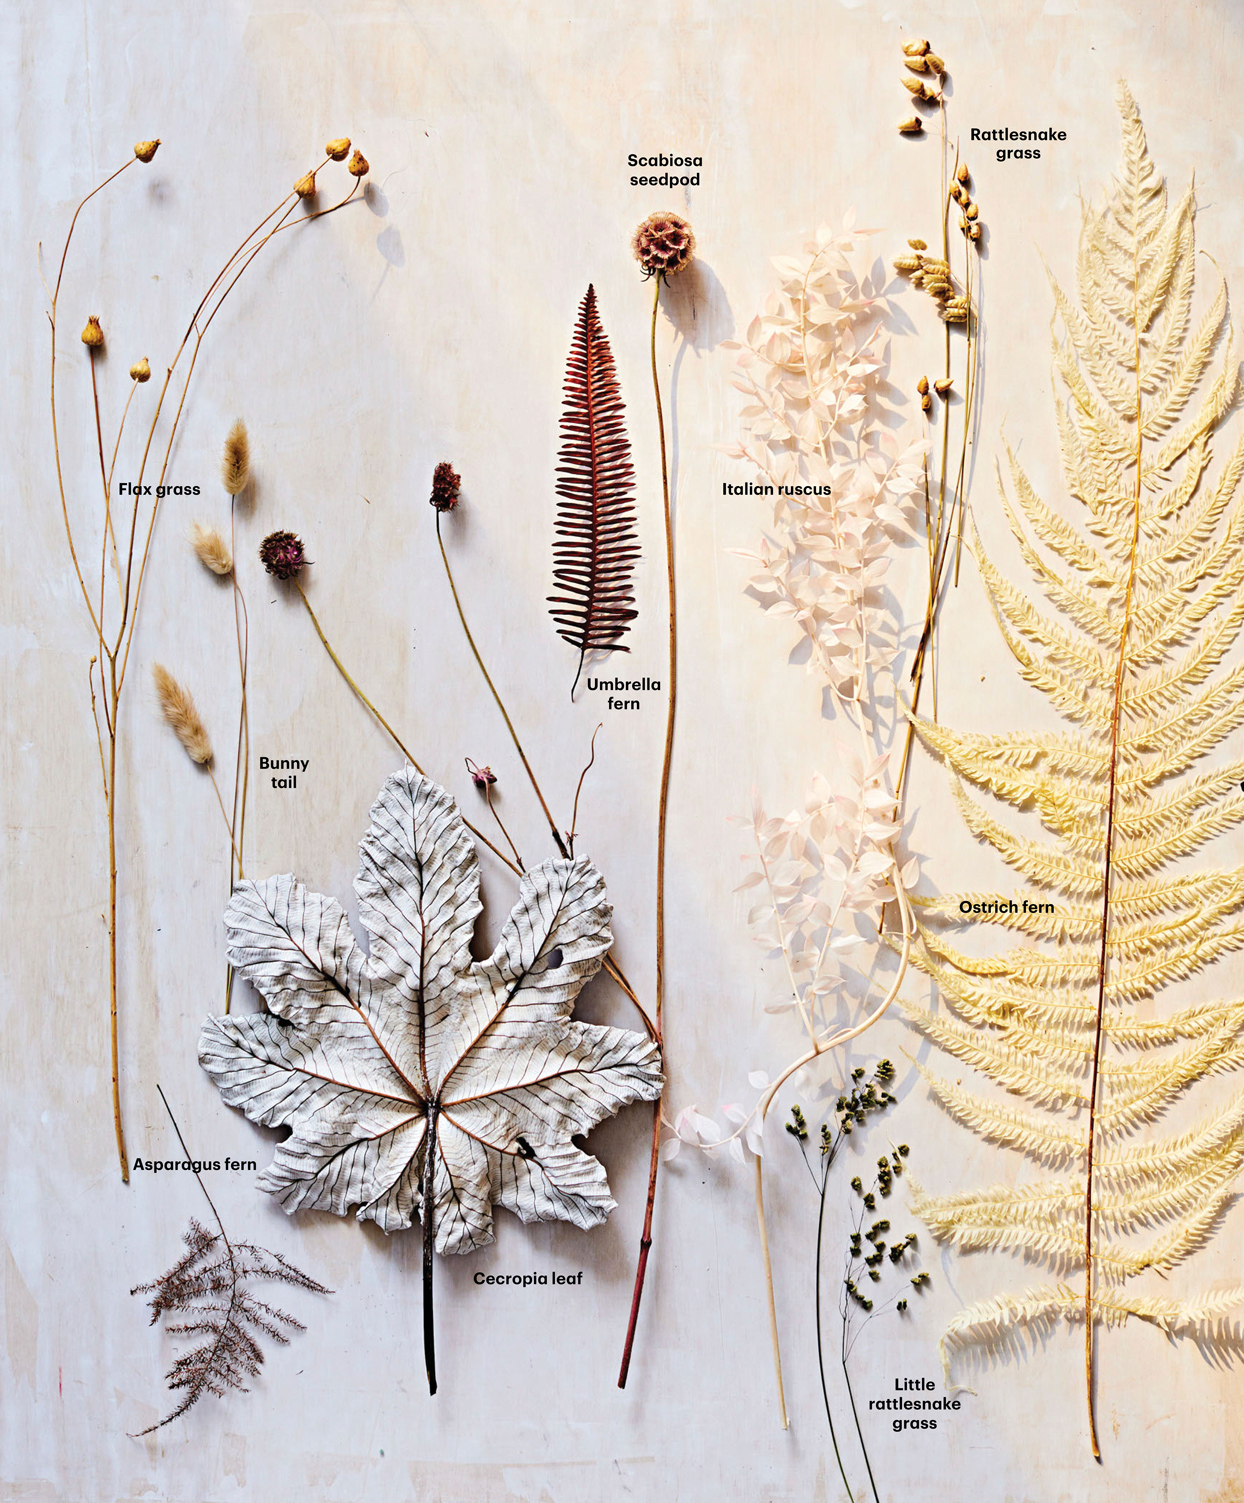 dried flowers and grains with their descriptions